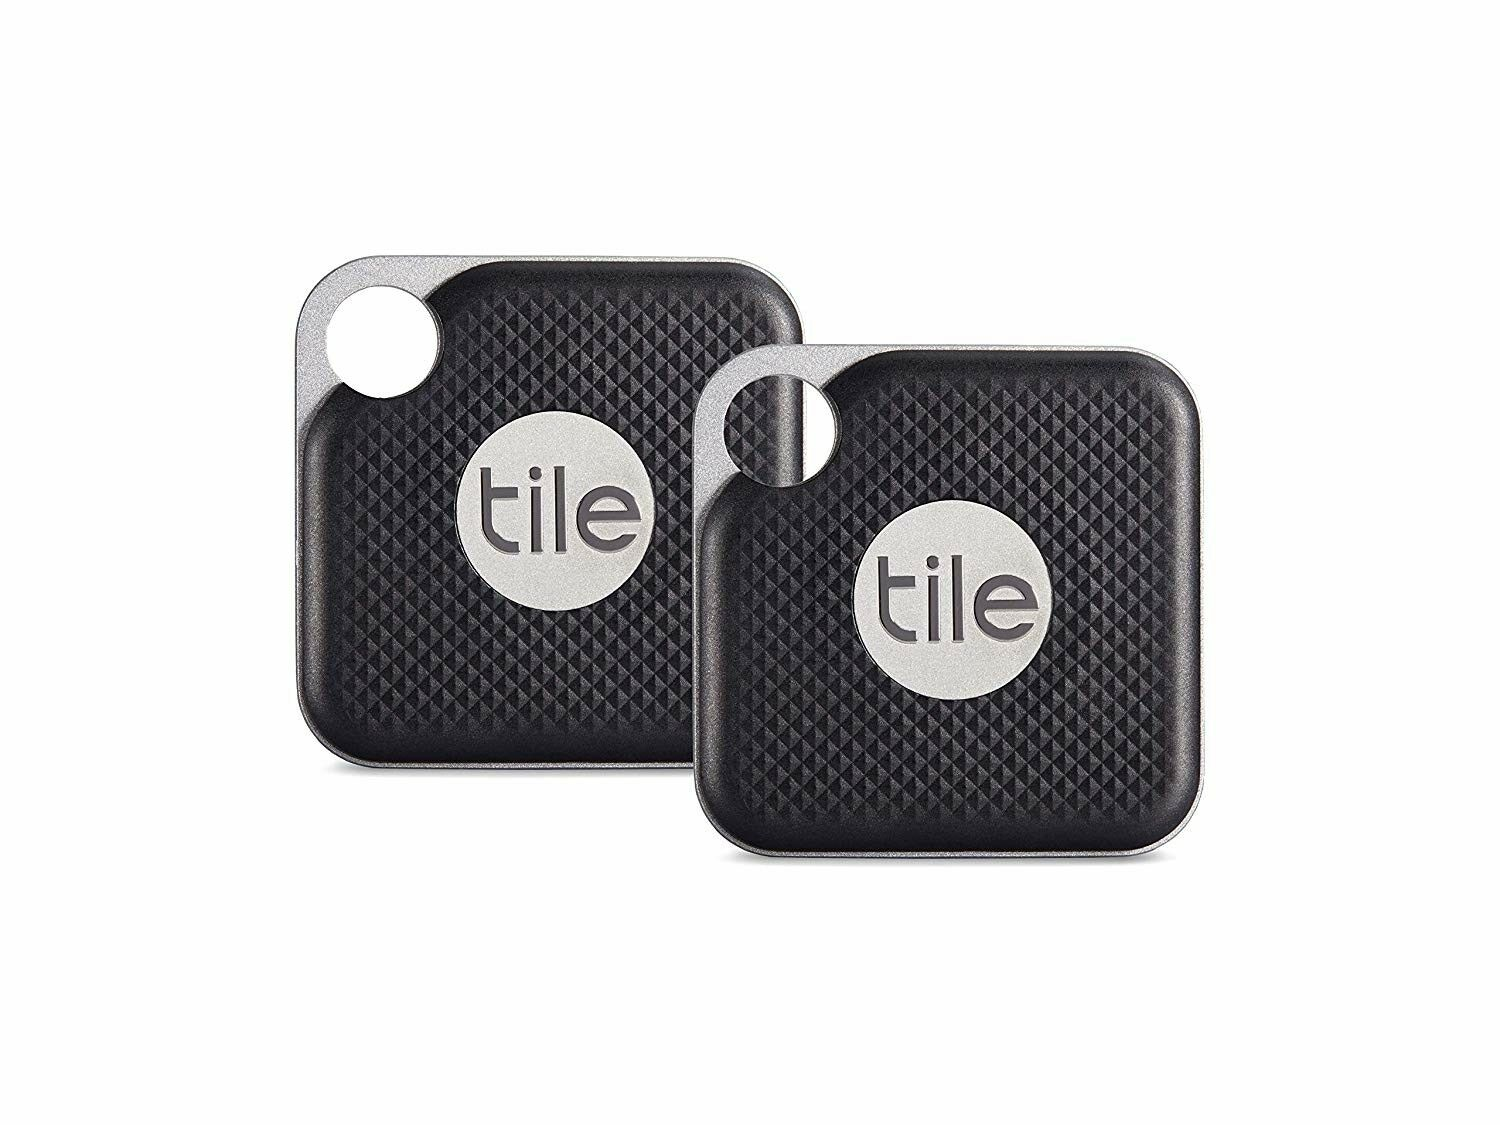 Tile Pro With Replaceable Battery Bluetooth Tracker To Find